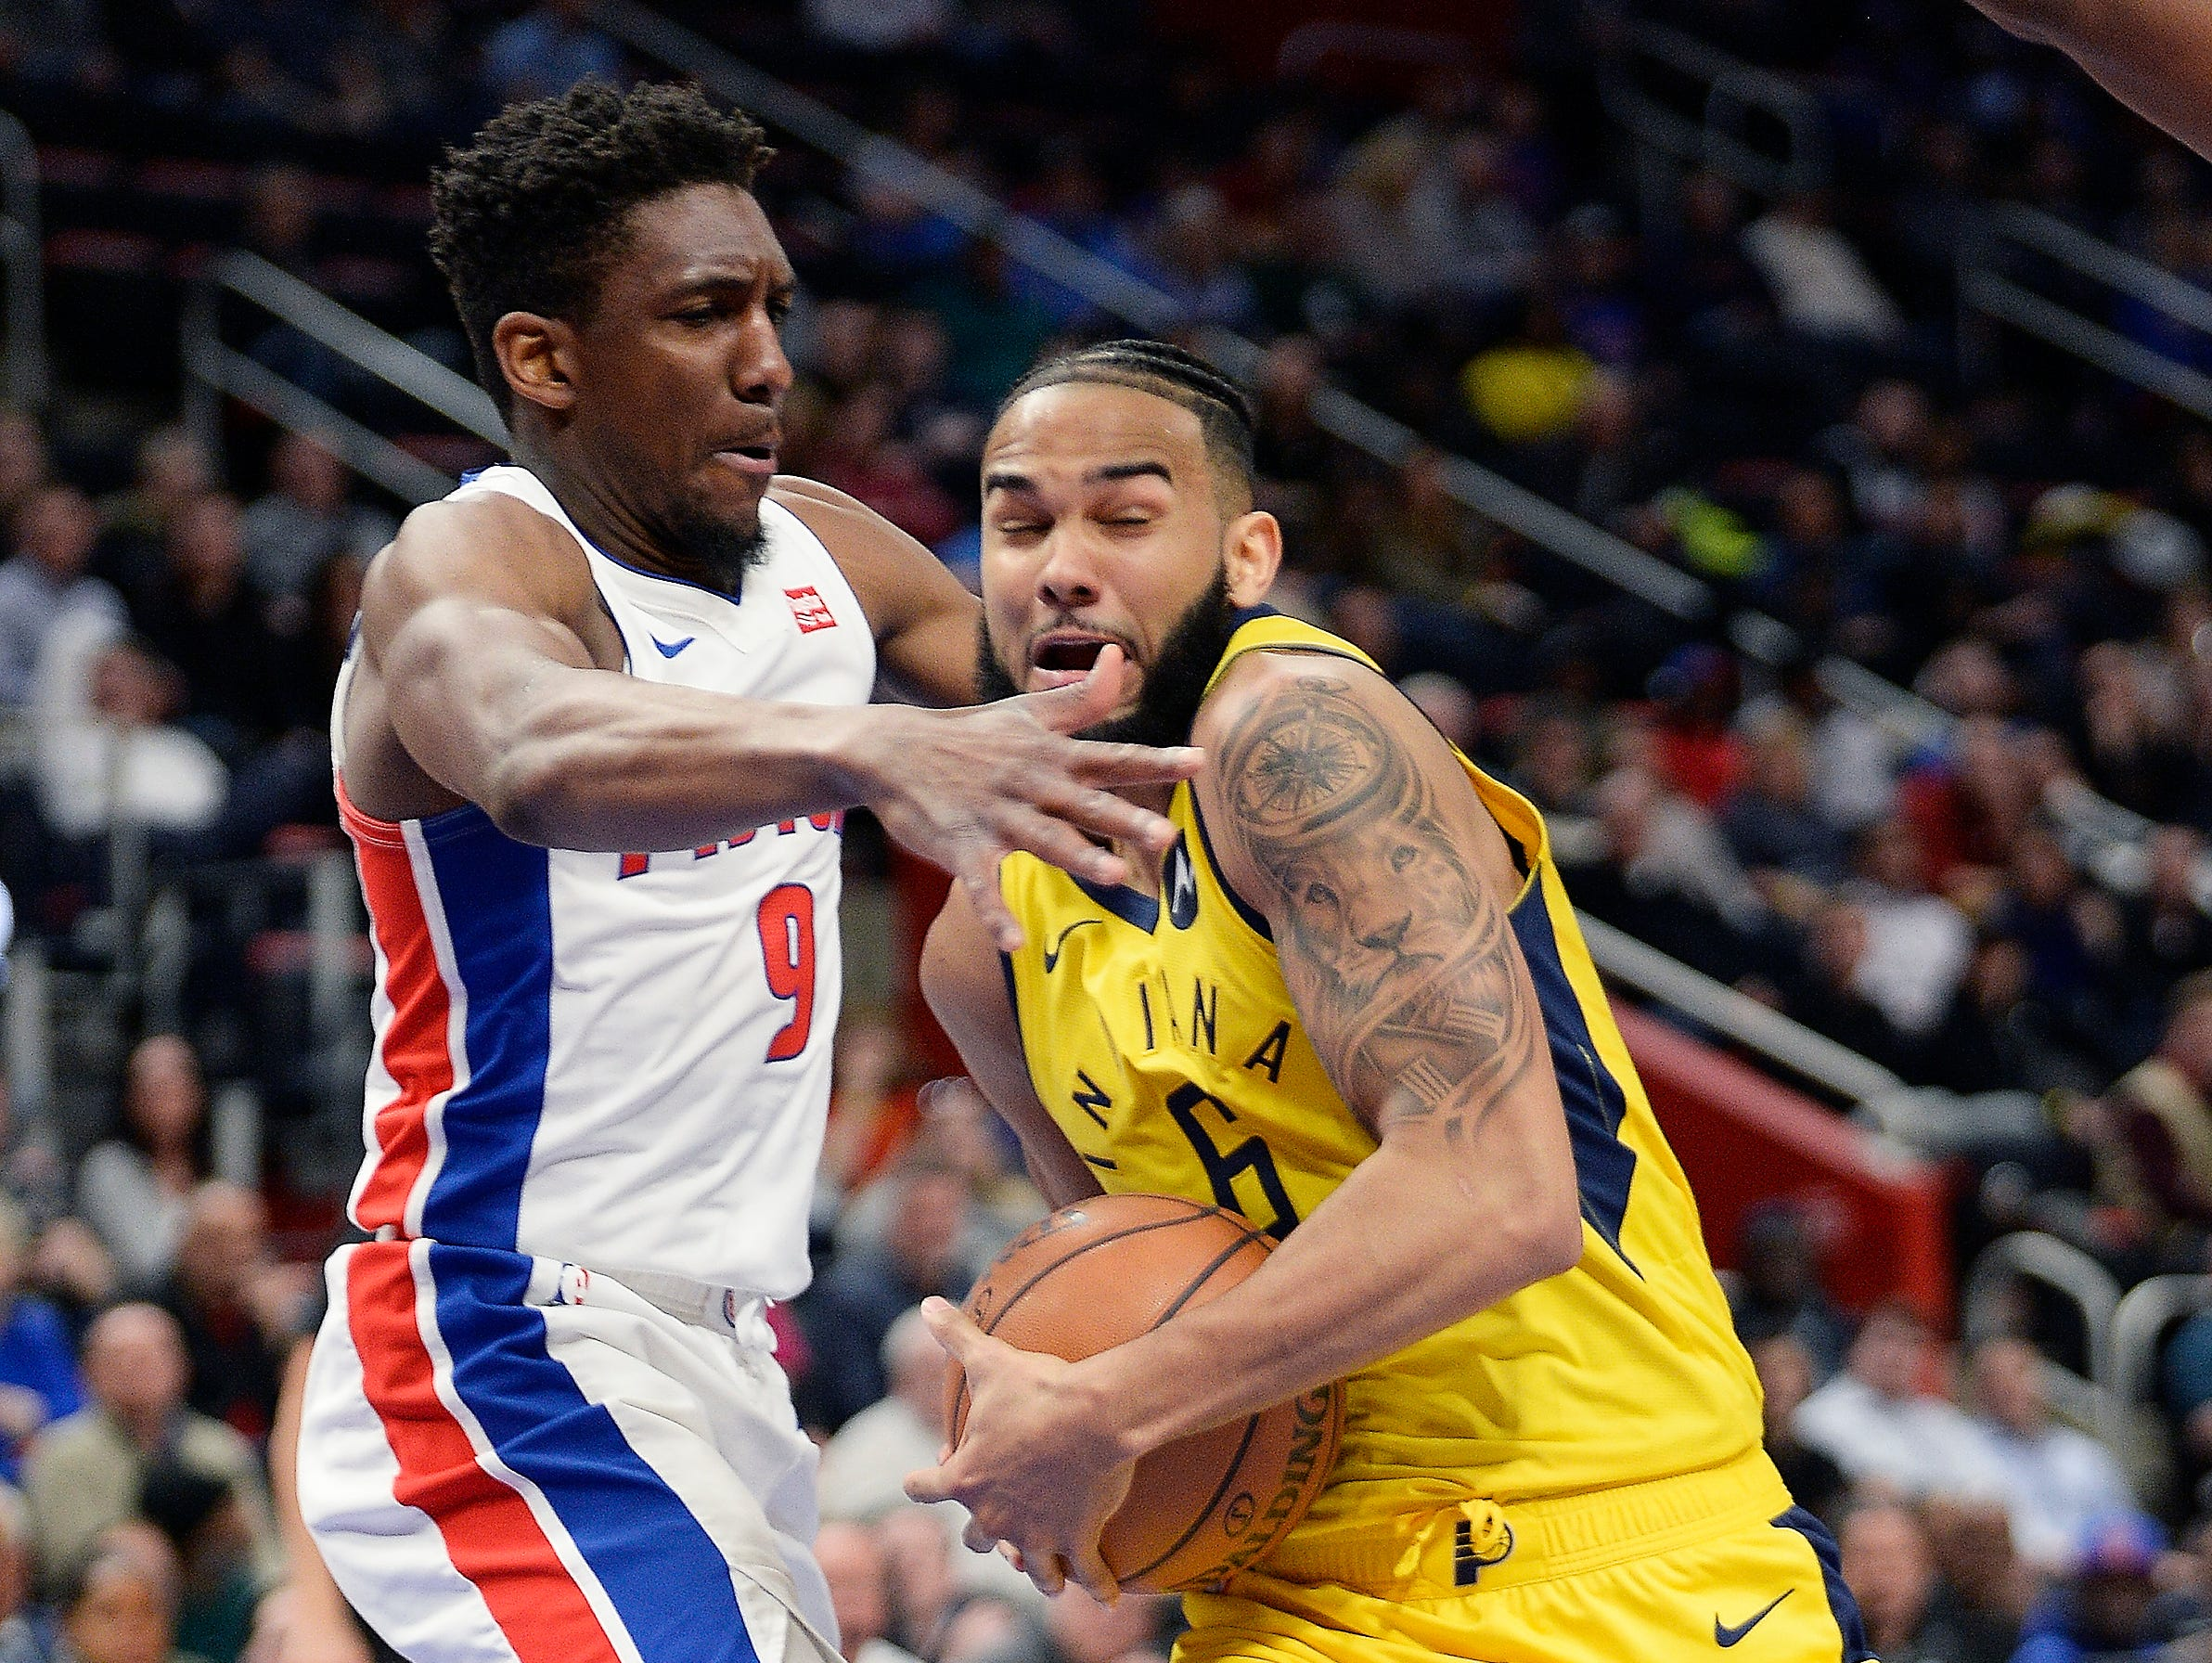 Detroit's Langston Galloway defends the Pacers' Cory Joseph in the fourth quarter.